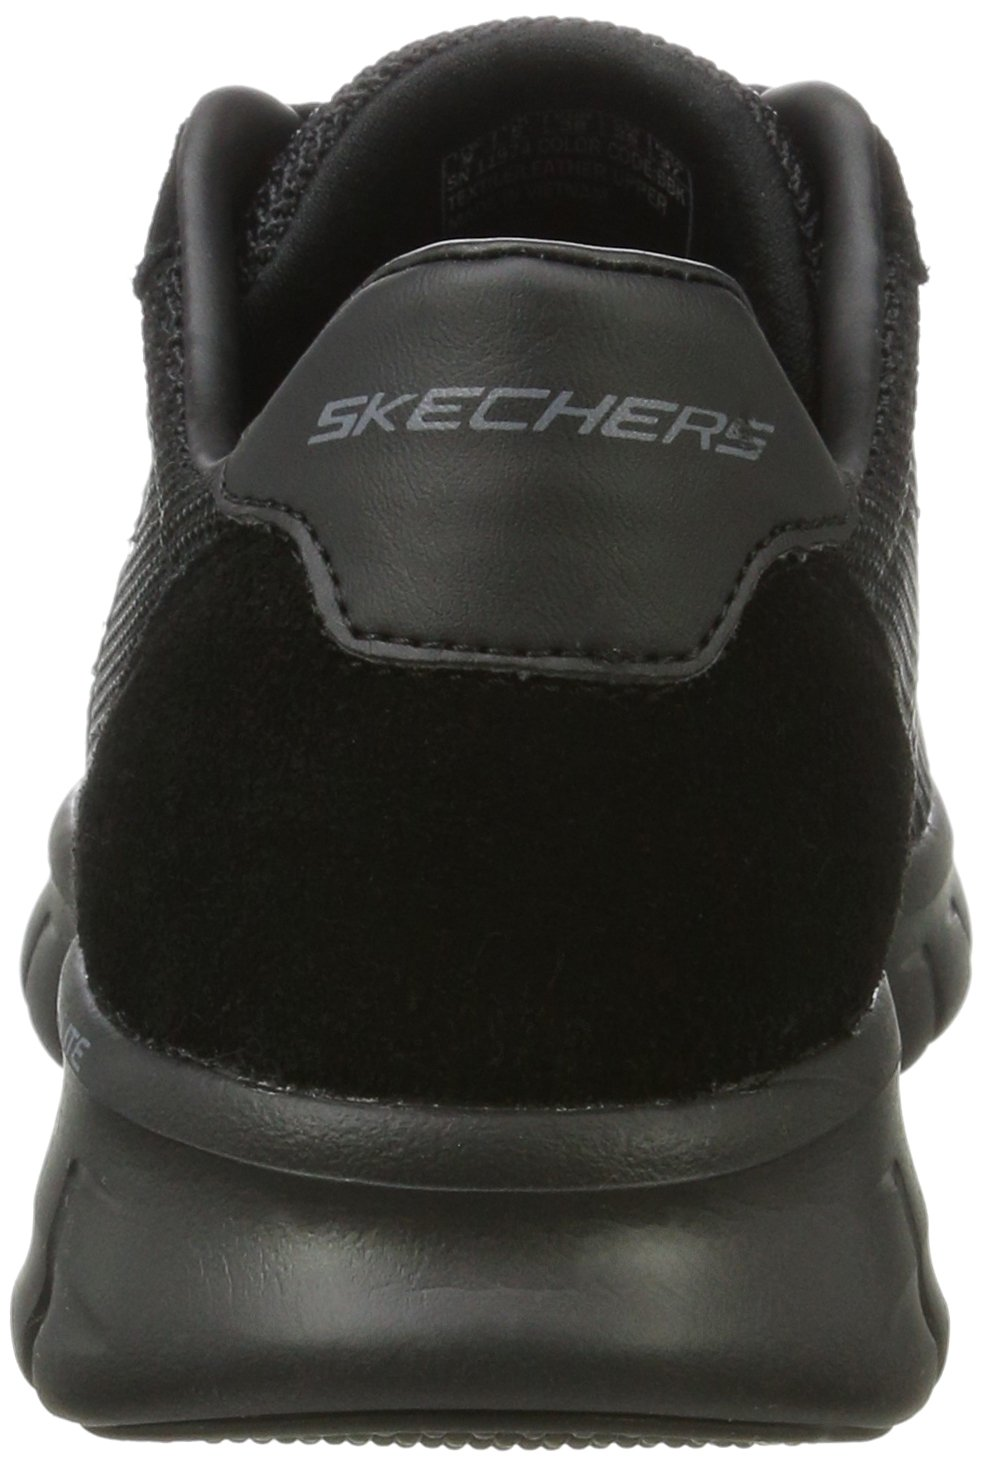 Skechers Synergy B01IVMGRQO Case Closed Womens Sneakers B01IVMGRQO Synergy 9 B(M) US|Black 17f44a